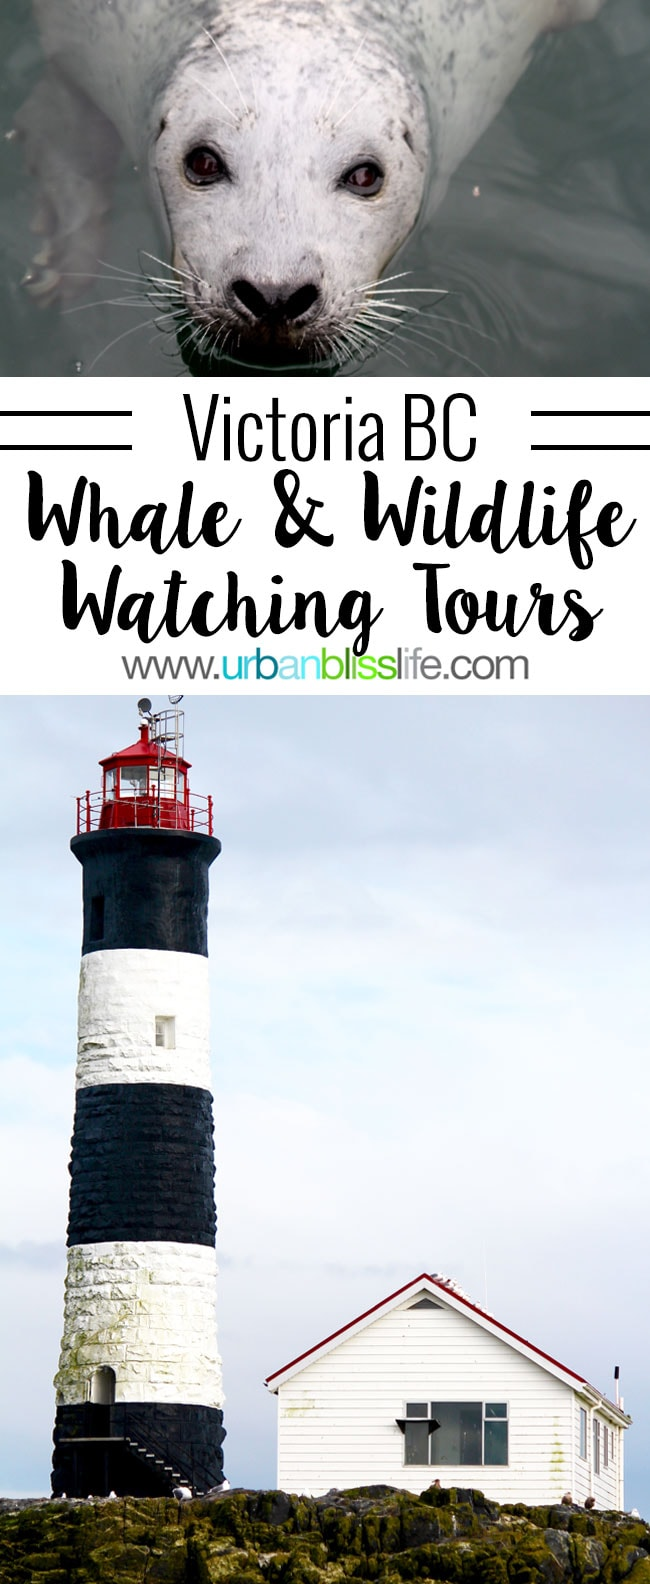 Whale & Wildlife Watching Tours in Victoria BC on UrbanBlissLife.com